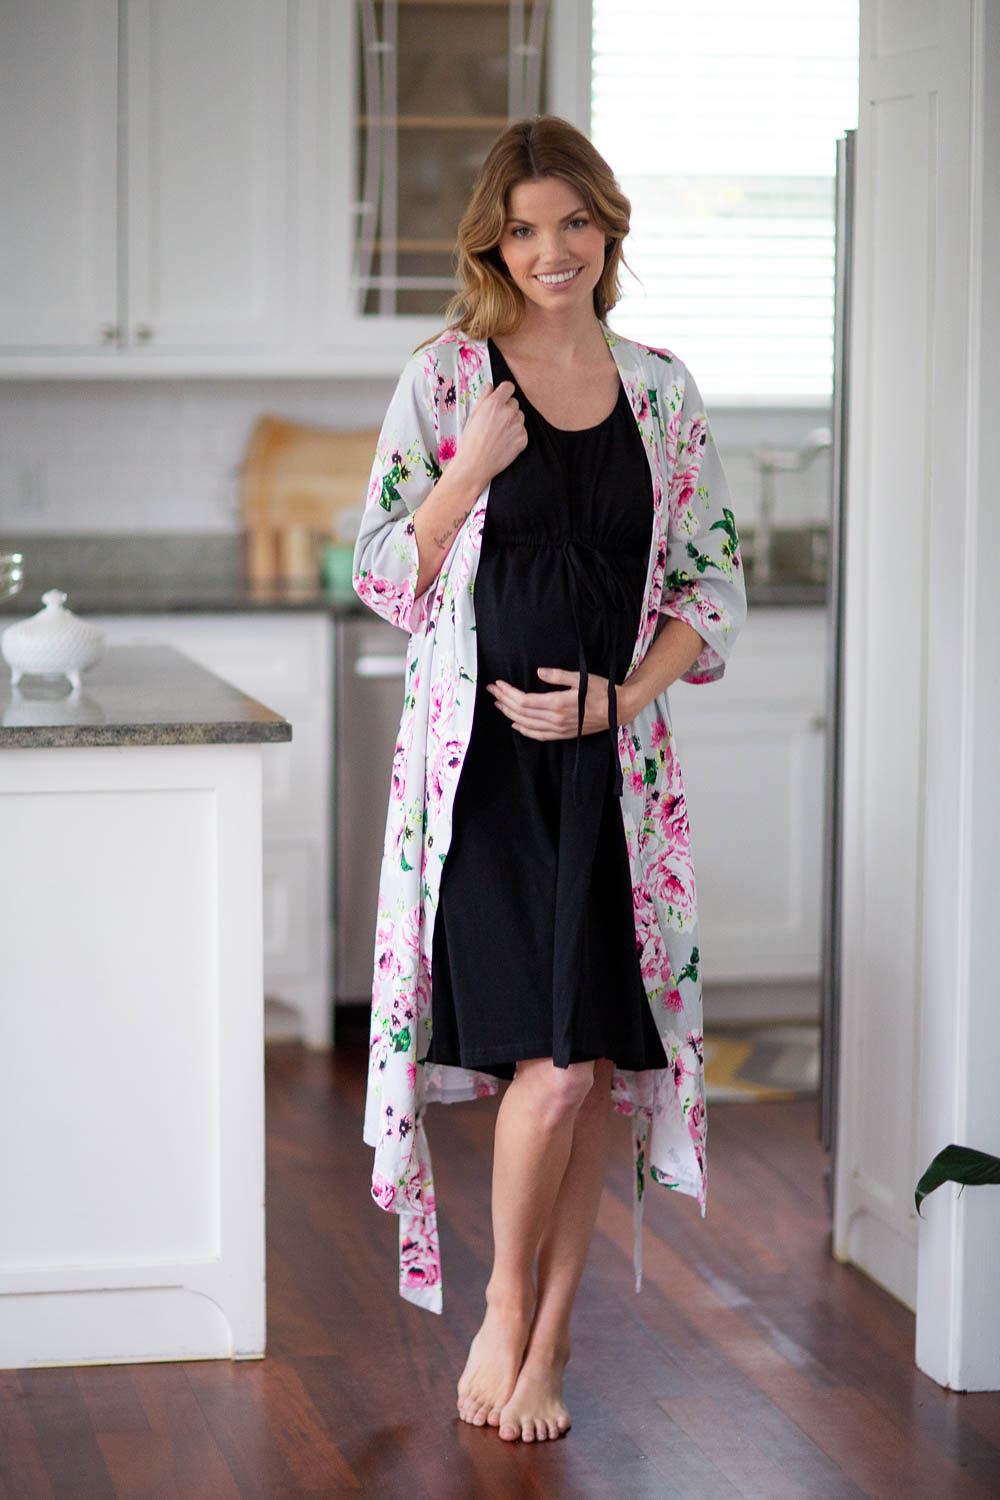 Olivia Robe & Black Labor Gown